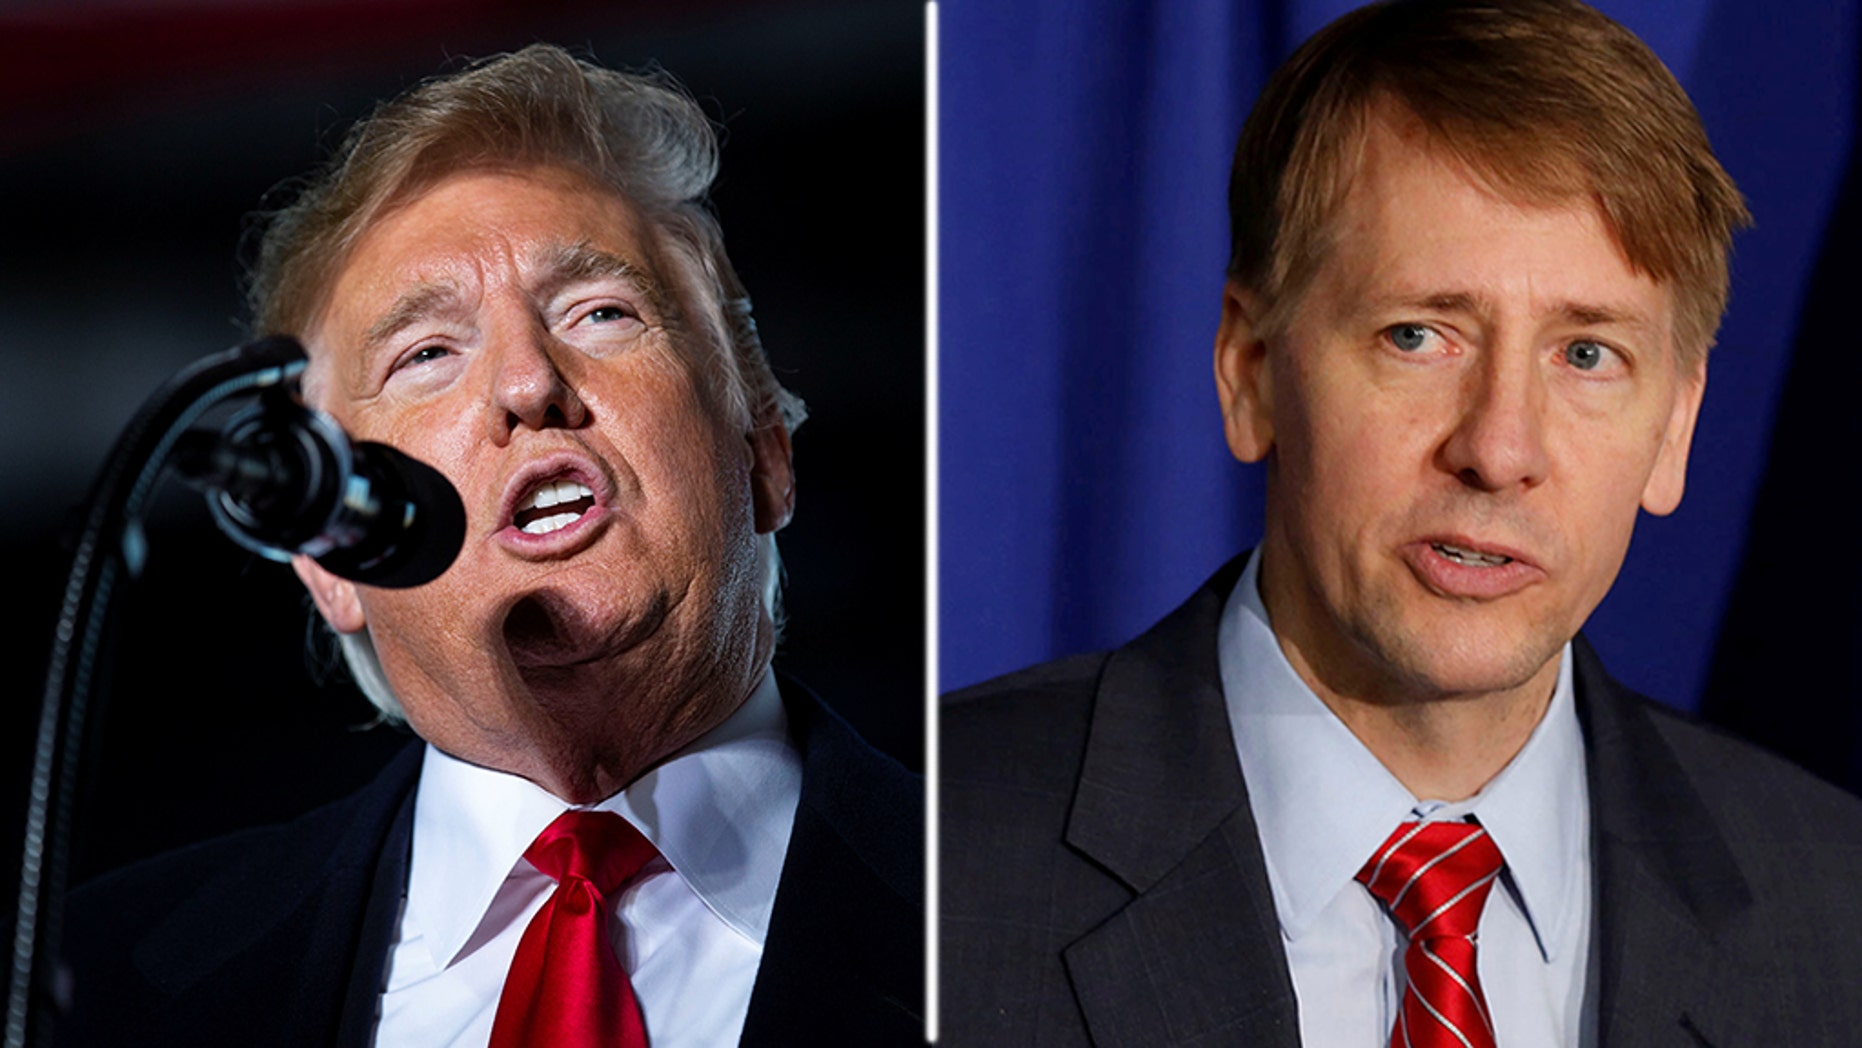 "Trump used Twitter on Tuesday to slam Richard Cordray, the Democratic candidate in Ohio's gubernatorial race, as the ""clone of Pocahontas."" Pocahantas is his nickname for Massachusetts Sen. Elizabeth Warren, whom he has derided over her claims of a Native American heritage."